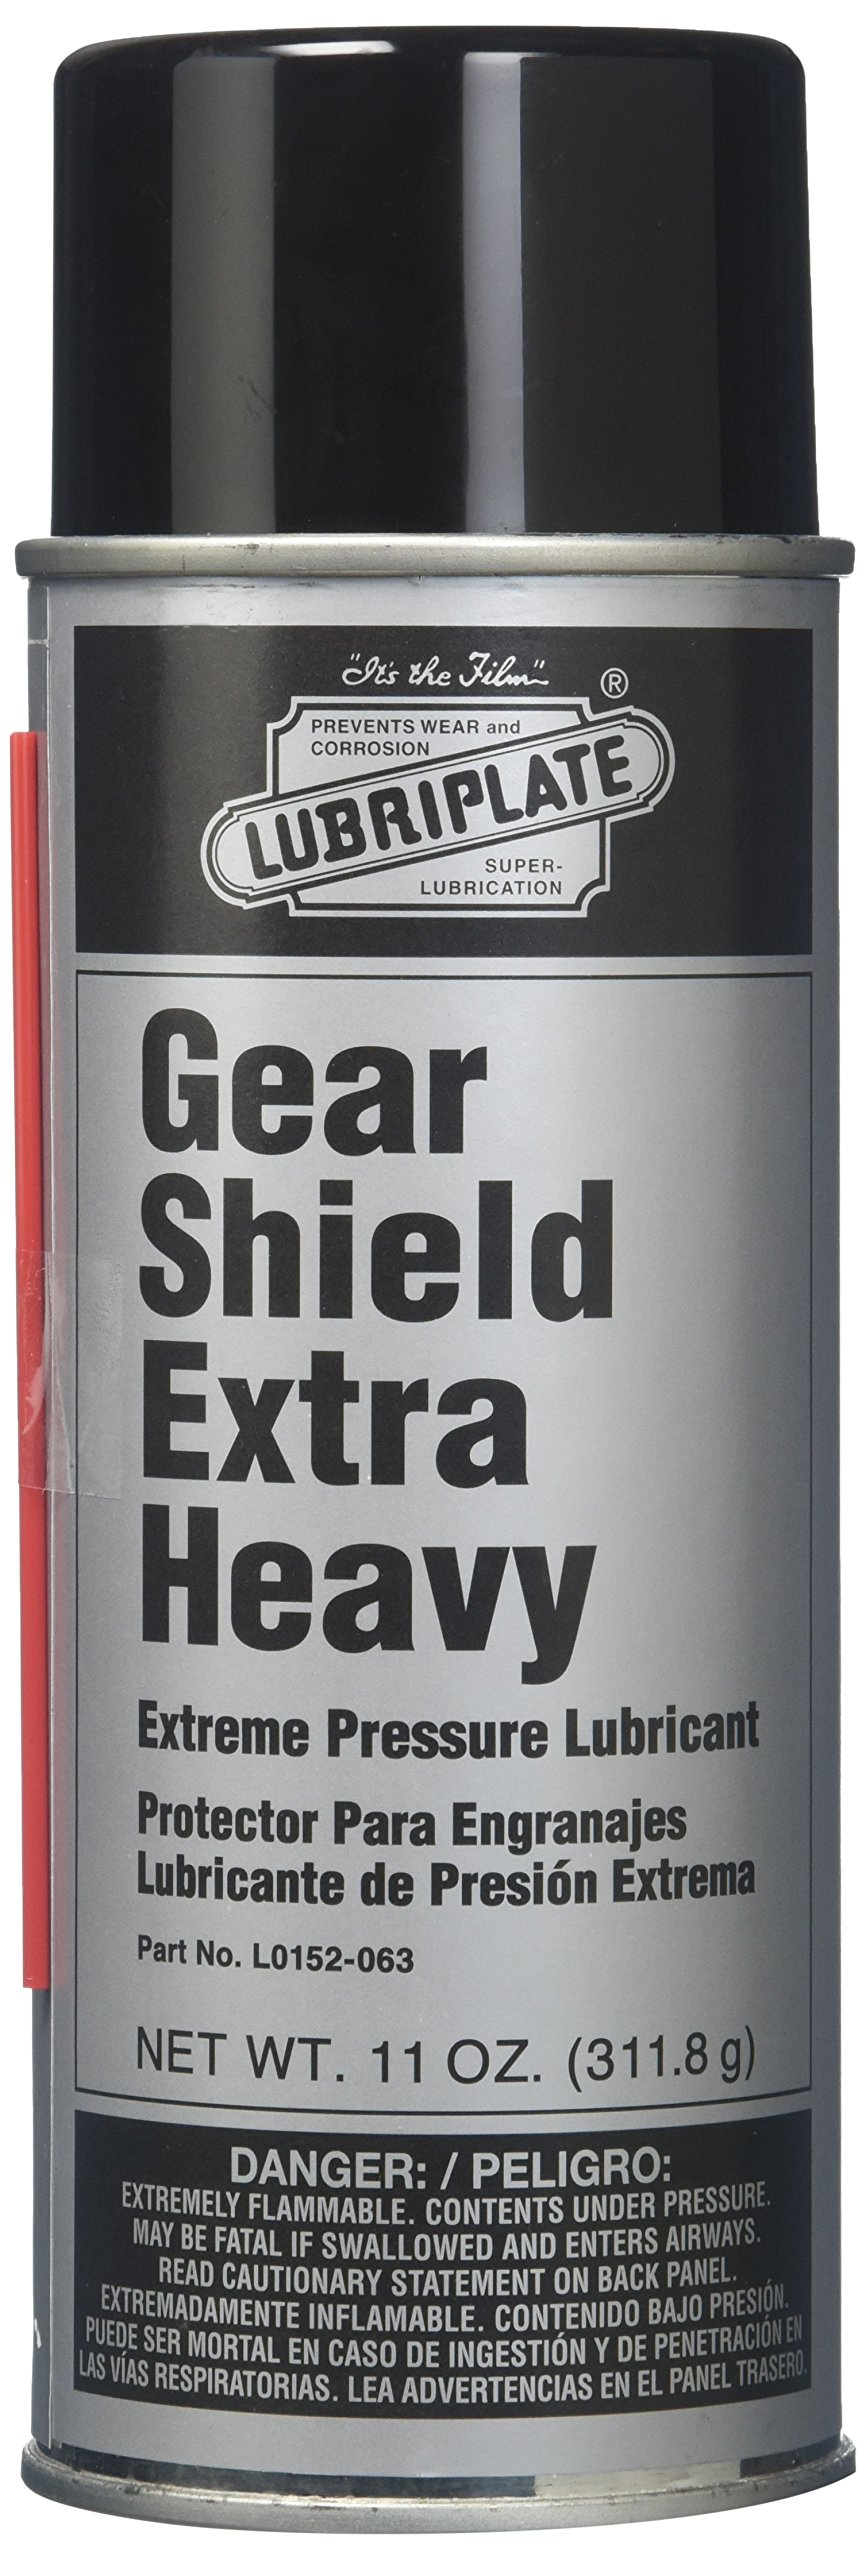 Lubriplate L0152-063 Gear Shield Series Black ISO-9001 Registered Quality System, ISO-21469 Compliant 40+ cSt Multi-Purpose Open Gear Grease, 11 oz (Pack of 12) by Lubriplate